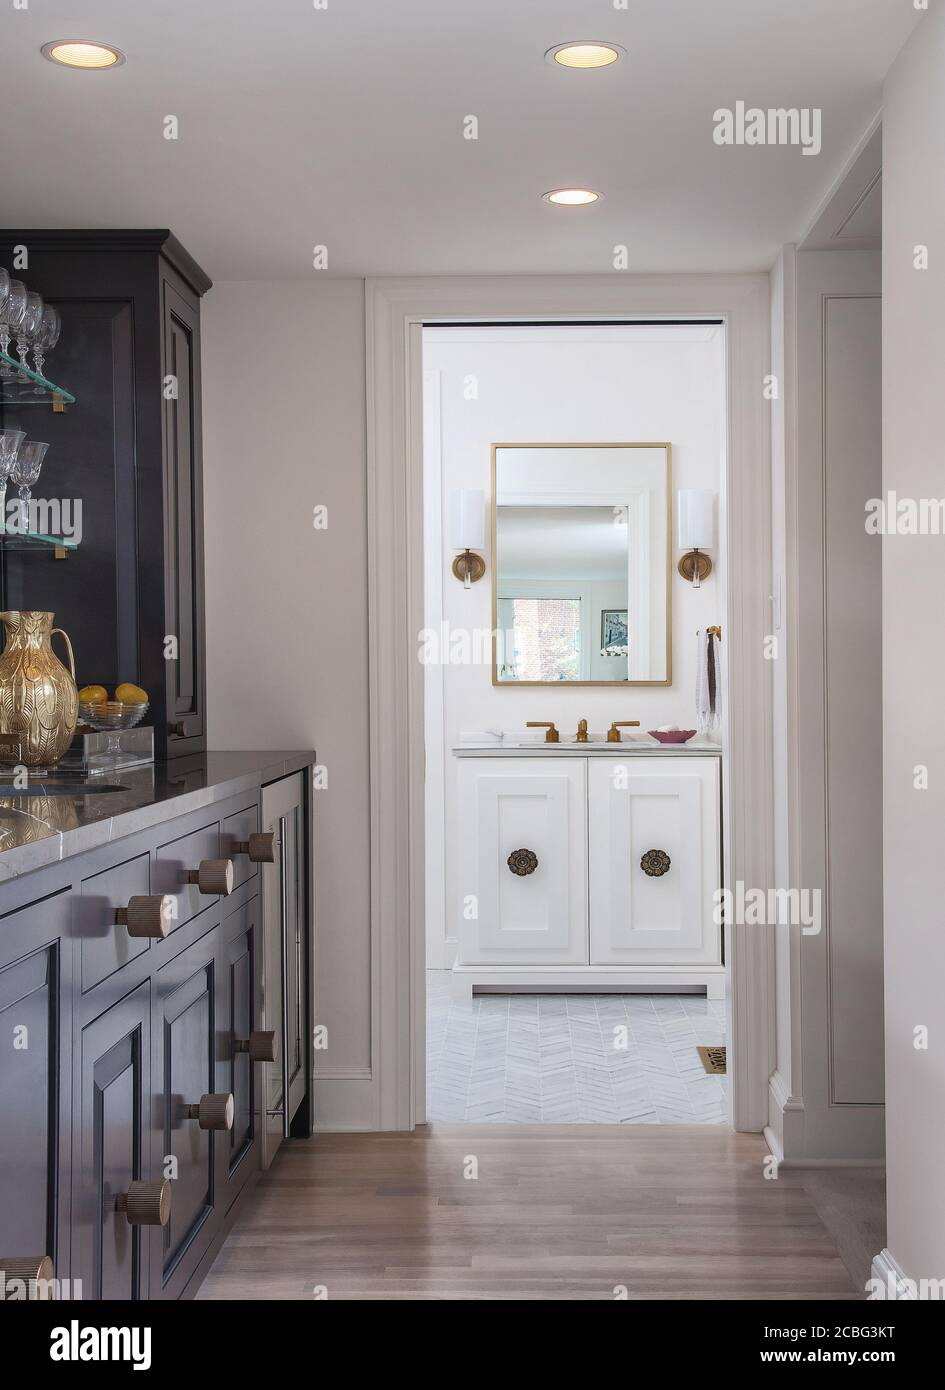 Gray And White Kitchen With Marble Backsplash Stock Photo Alamy